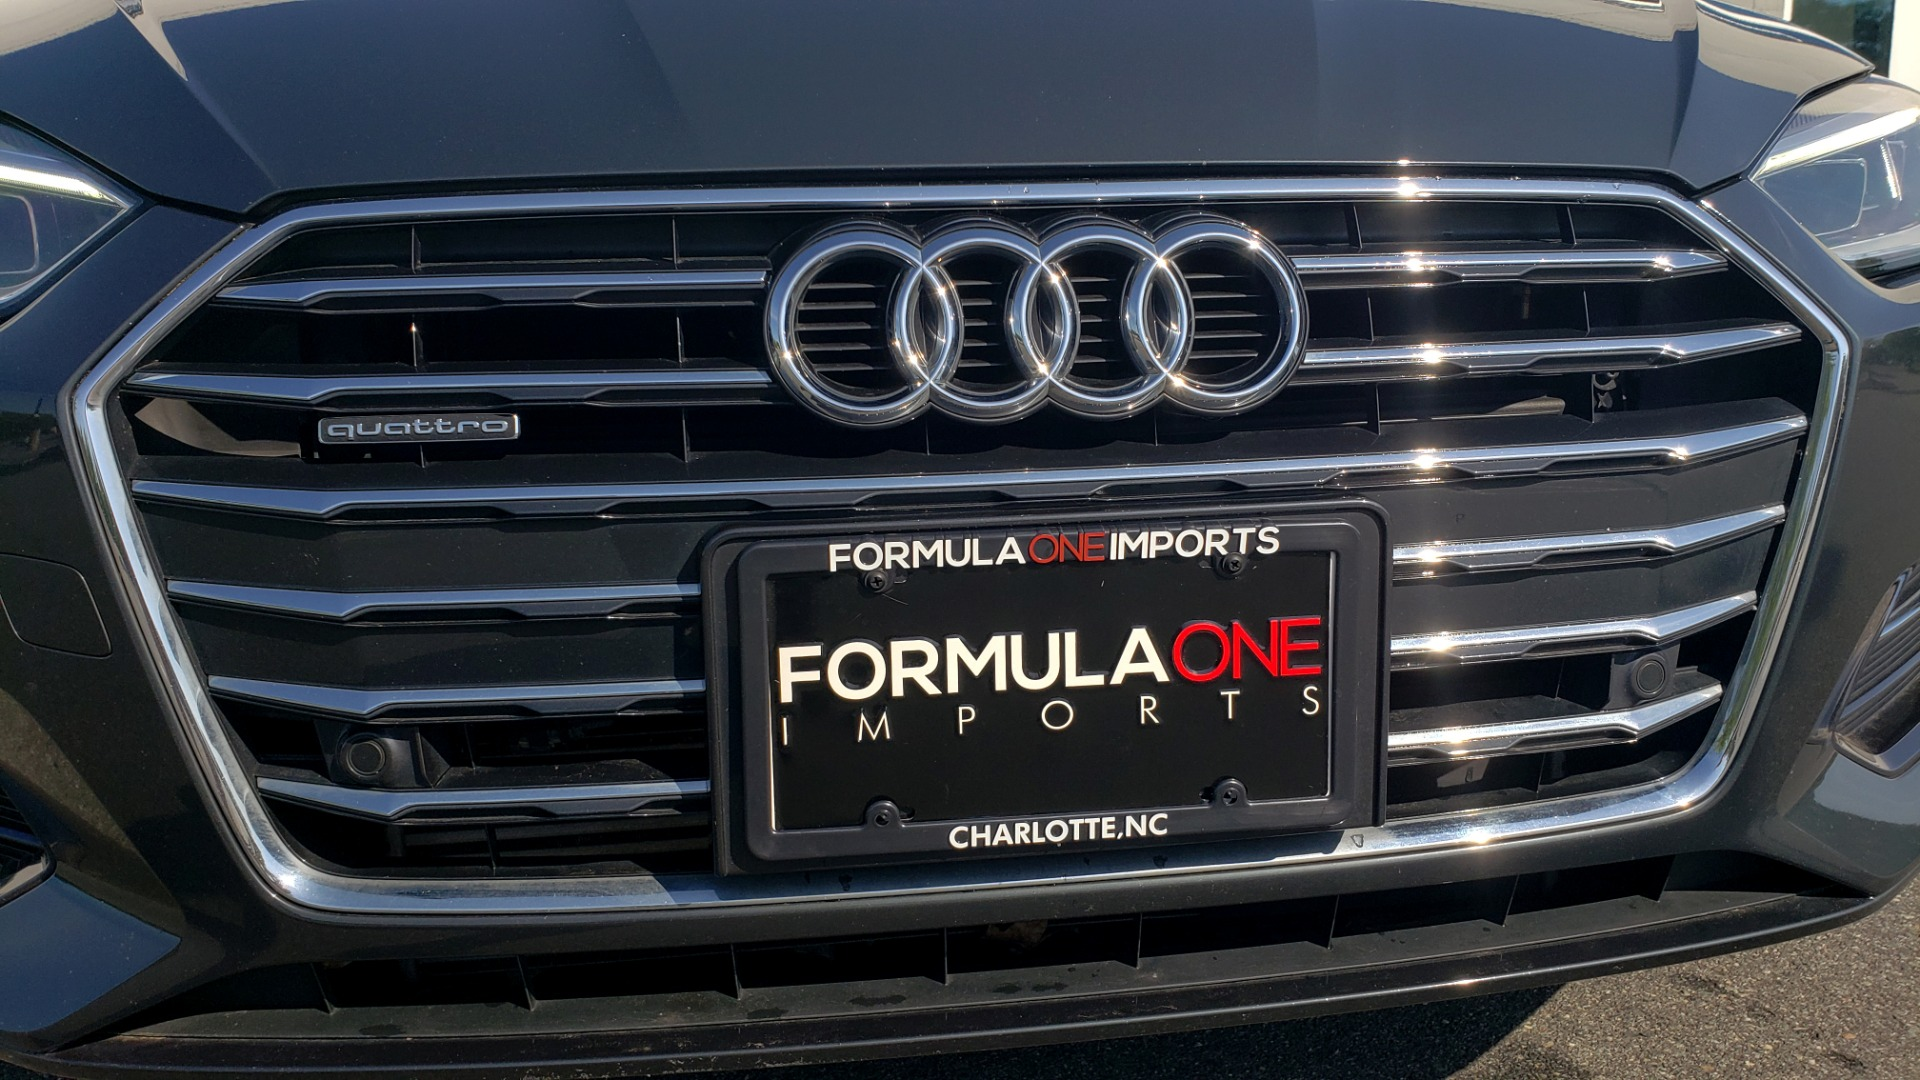 Used 2018 Audi A5 SPORTBACK PREMIUM PLUS 2.0T / AWD / NAV / B&O SND / SUNROOF / REARVIEW for sale Sold at Formula Imports in Charlotte NC 28227 29